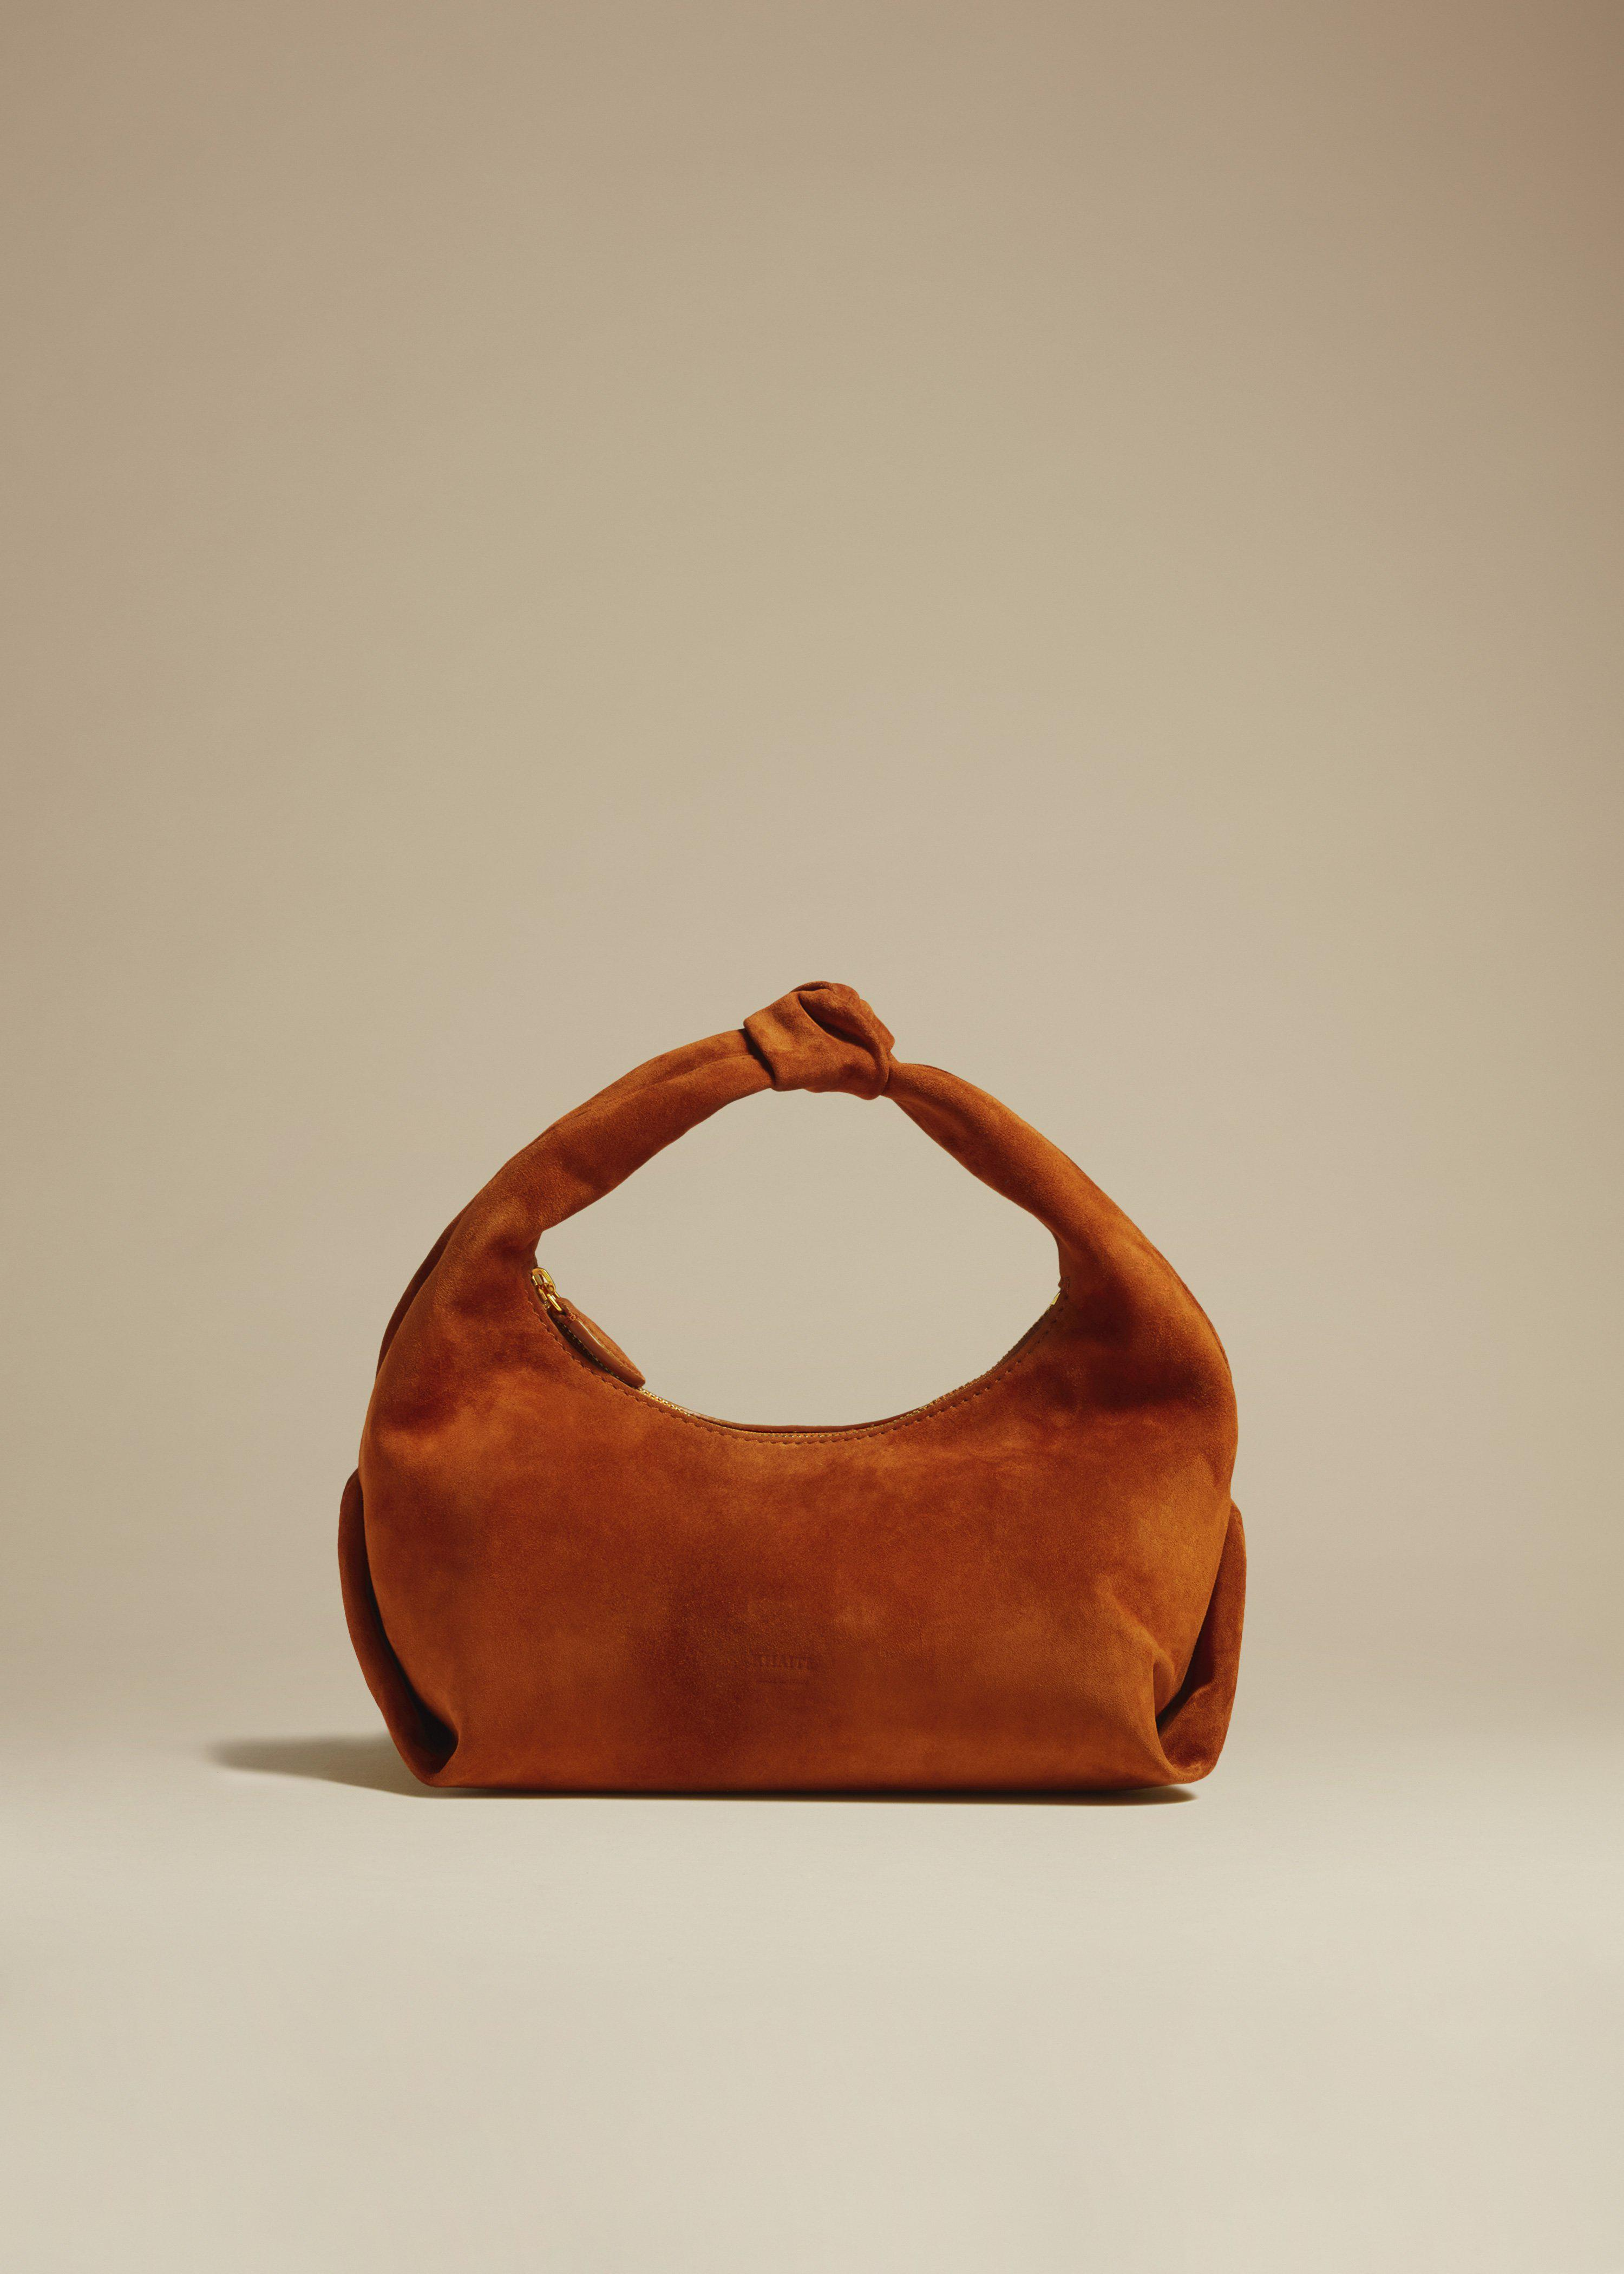 The Small Beatrice Hobo in Caramel Suede